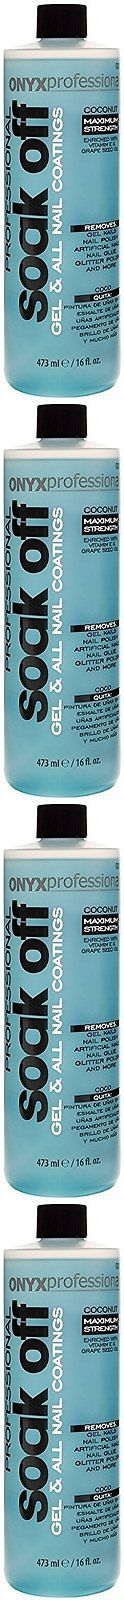 Nail Polish Remover: Onyx Professional Soak Off Shellac And Gel Nail Polish Artificial Nails, 16 Oz -> BUY IT NOW ONLY: $62.92 on eBay!